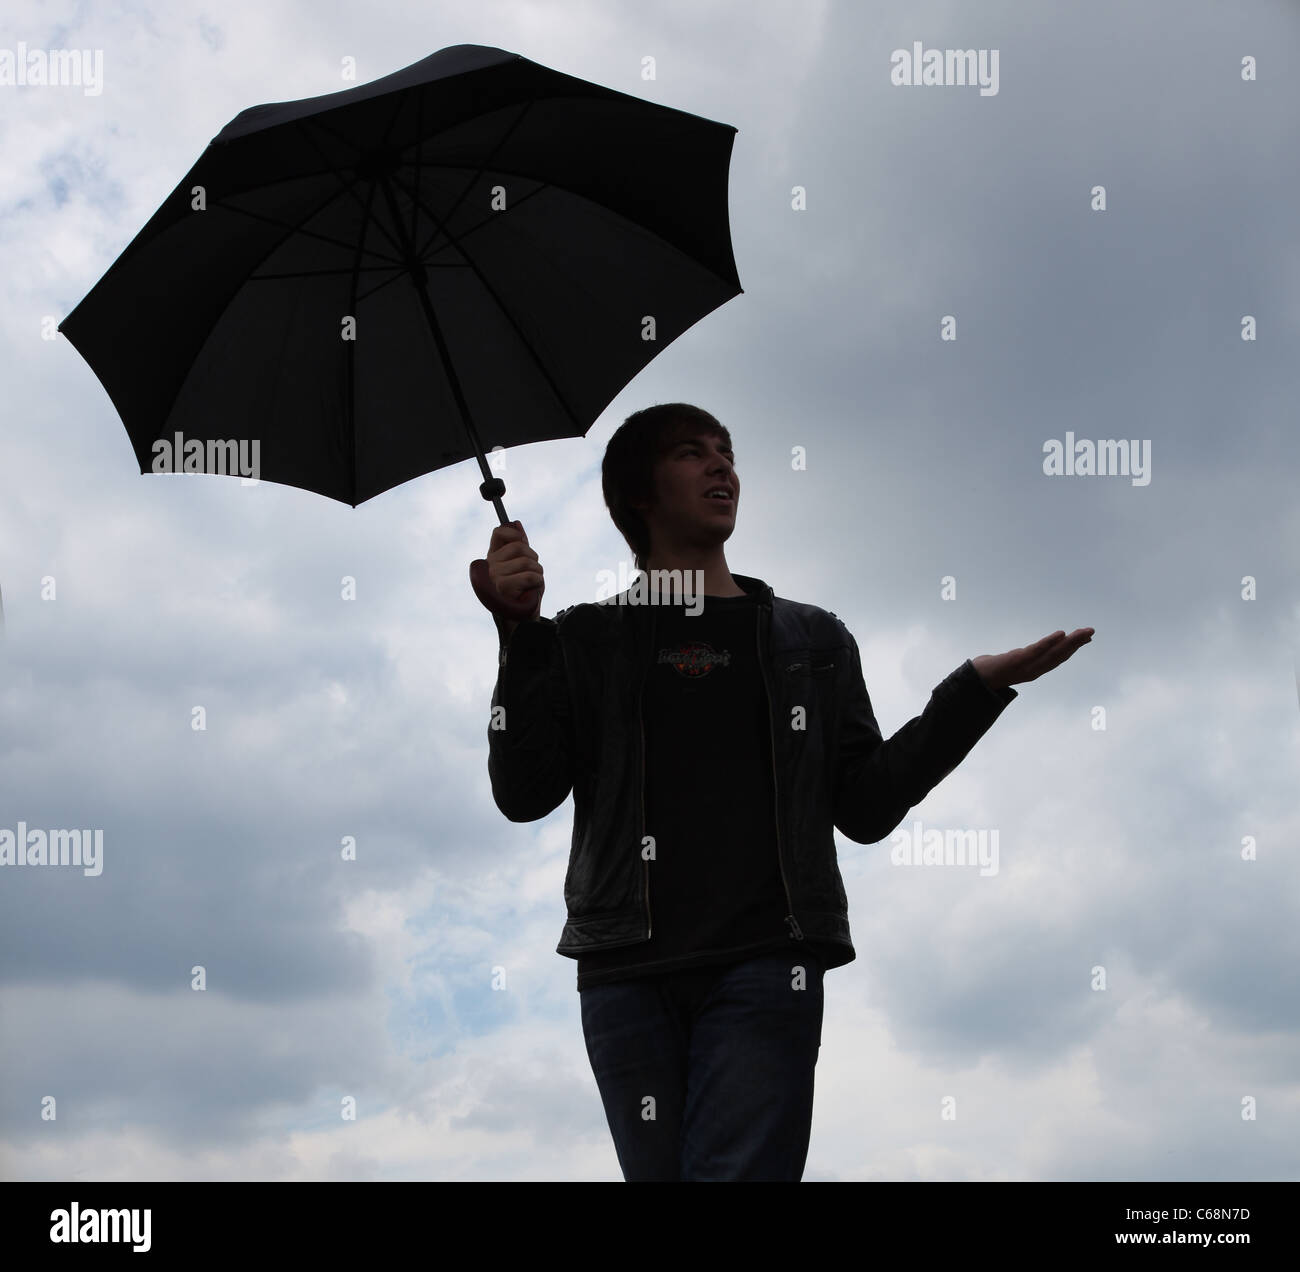 Man standing against a cloudy sky, hand out checking for rain, holding an umbrella. - Stock Image